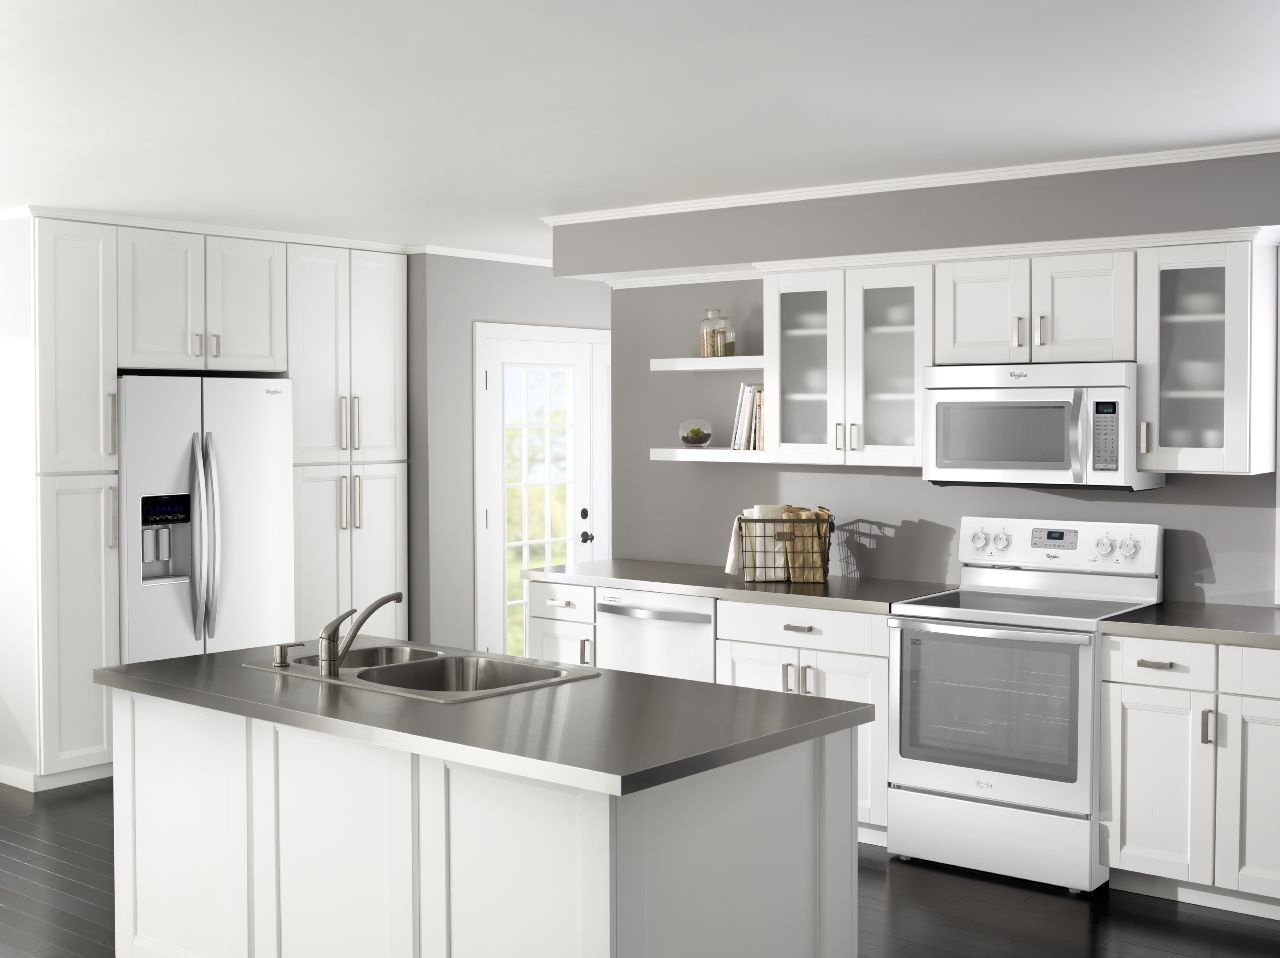 Best Kitchen Appliance Finishes For 2020 | Appliances Connection